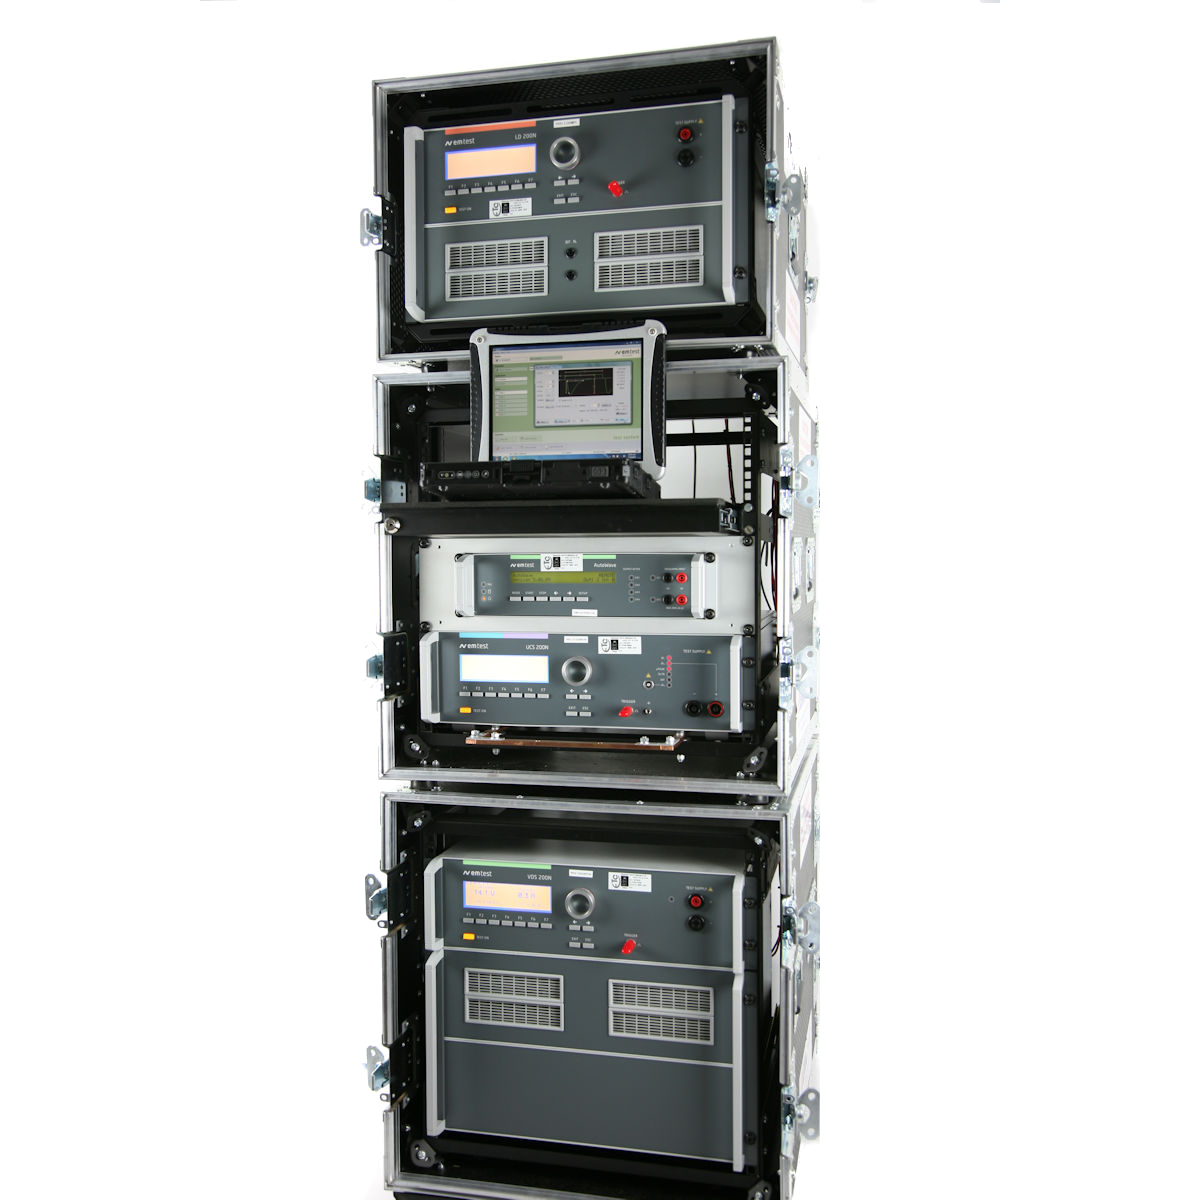 Investment in Automotive Test Equipment